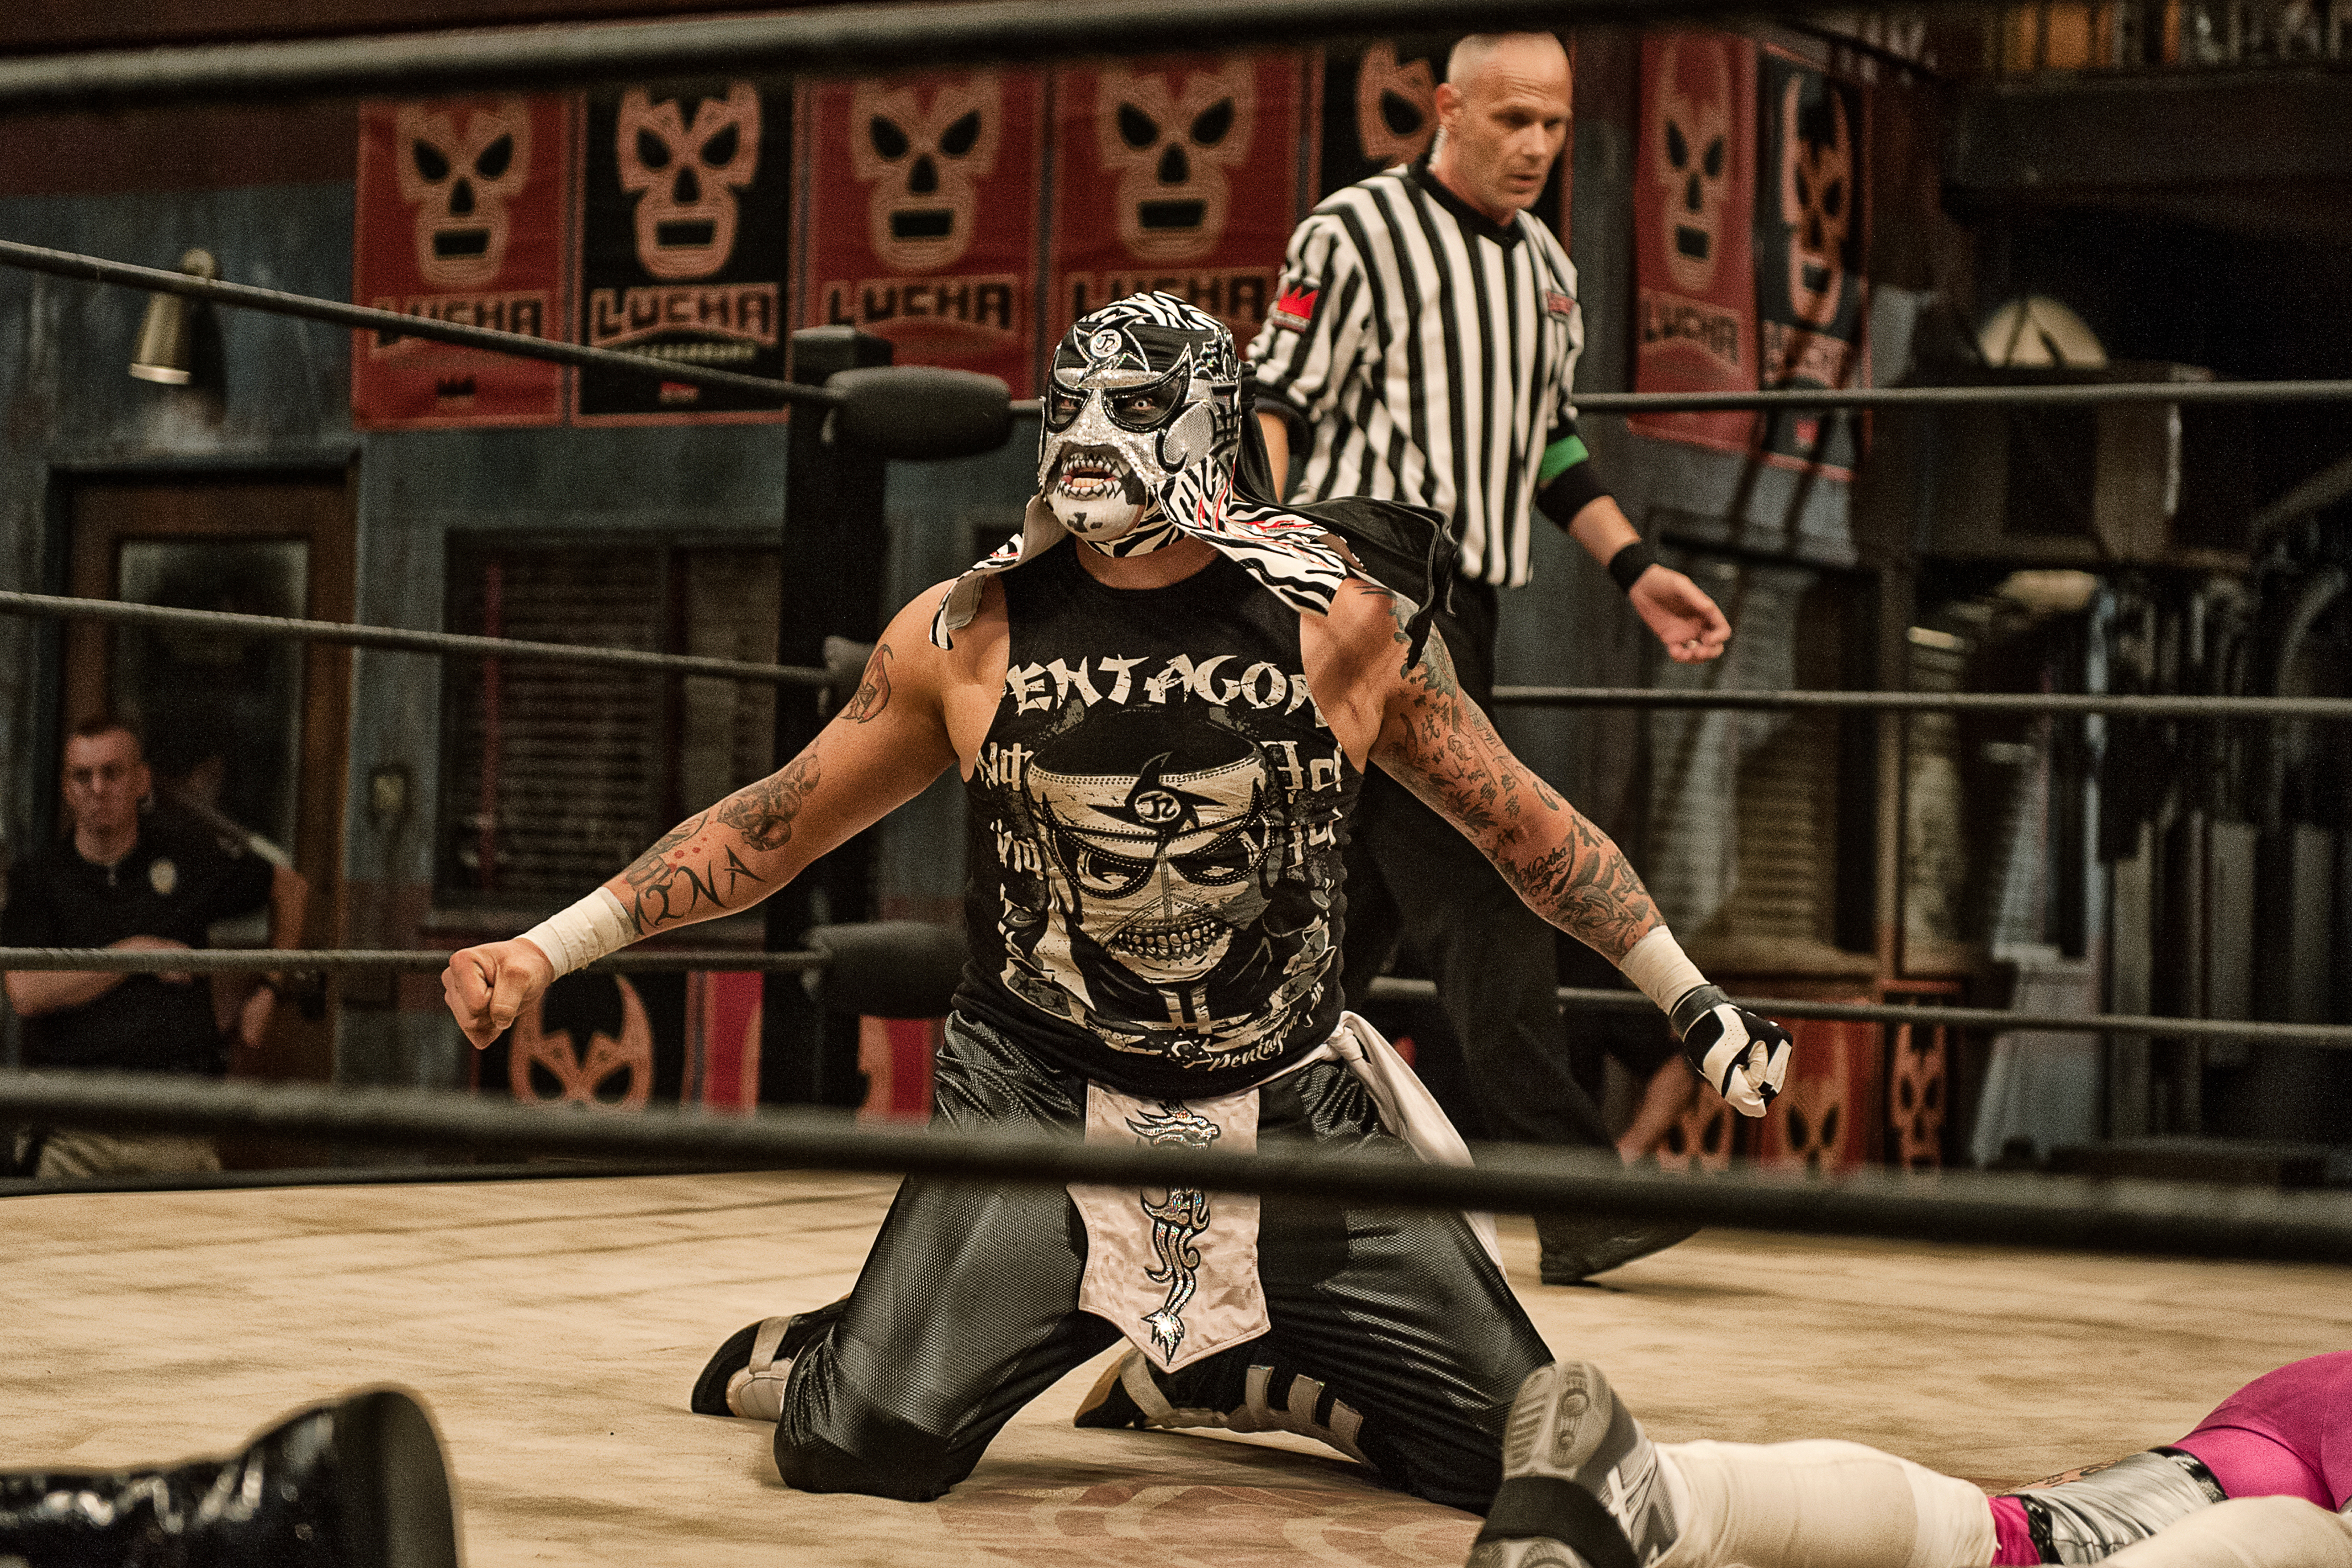 Pentagon Jr Lucha Underground S Bad Guy Is Out For Blood Rolling Stone